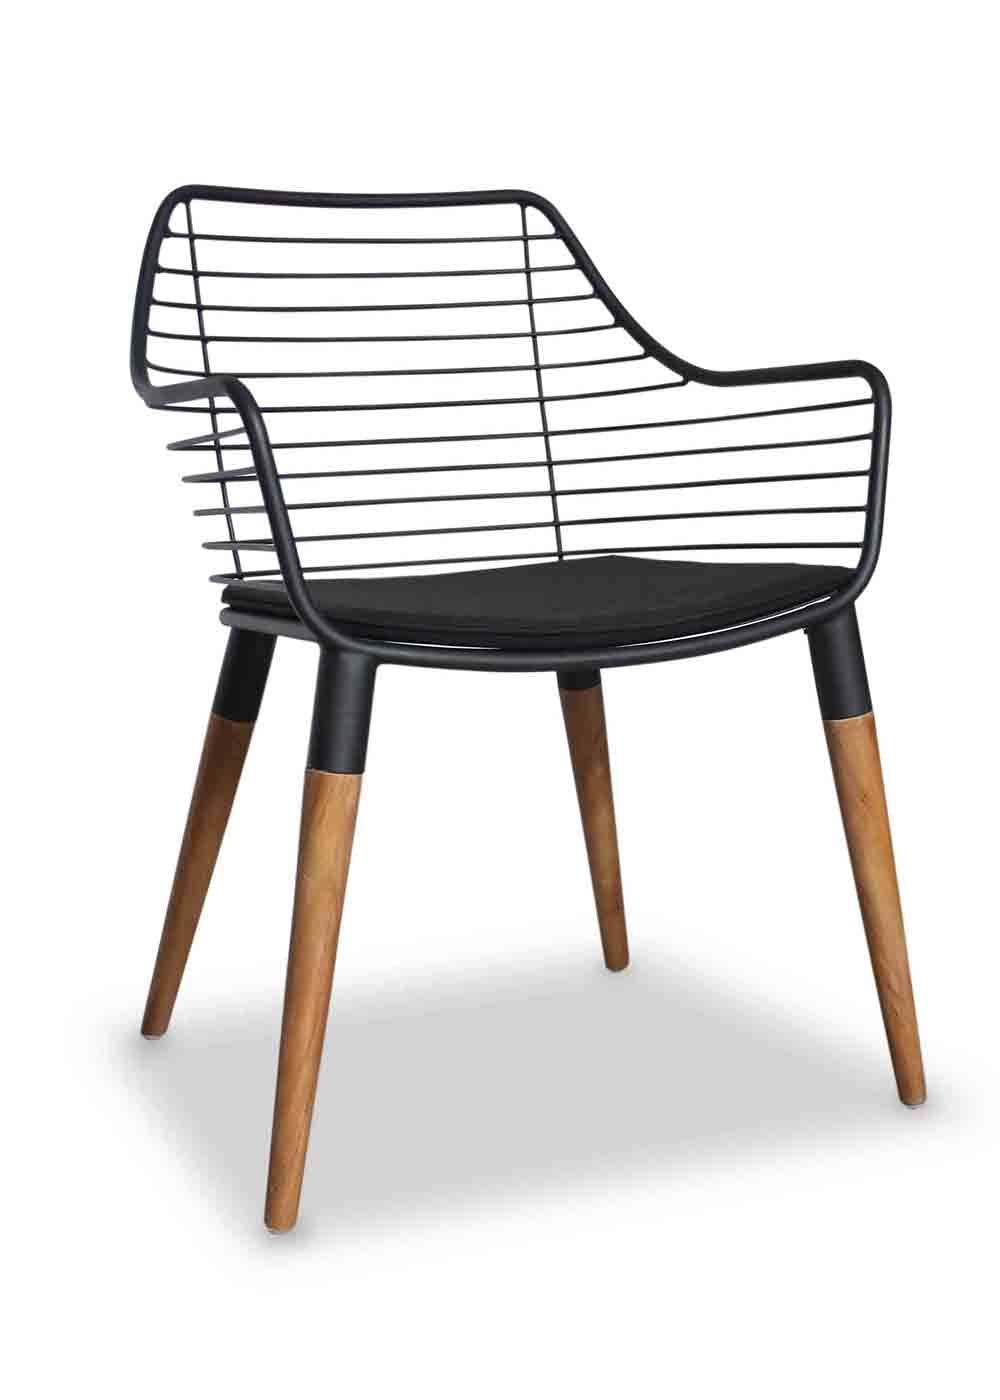 Picture Of The Emerson Arm Chair (Image 12 of 20)